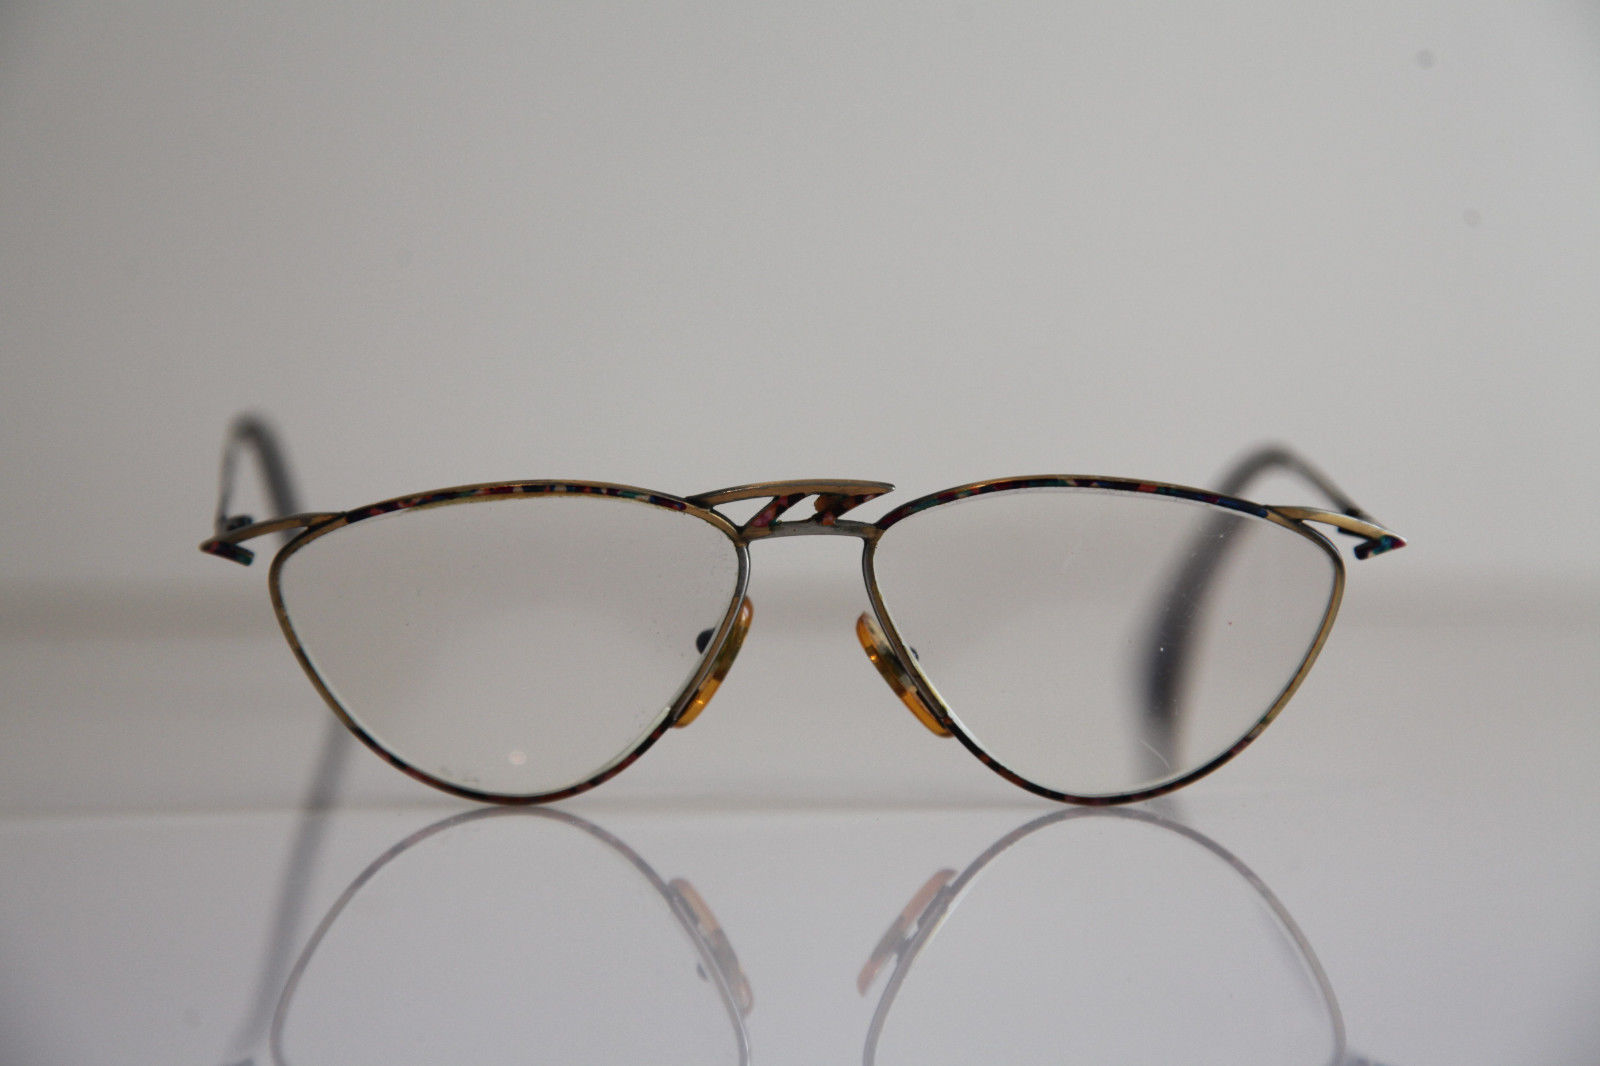 taxi eyewear gold frame rx able prescription lenses